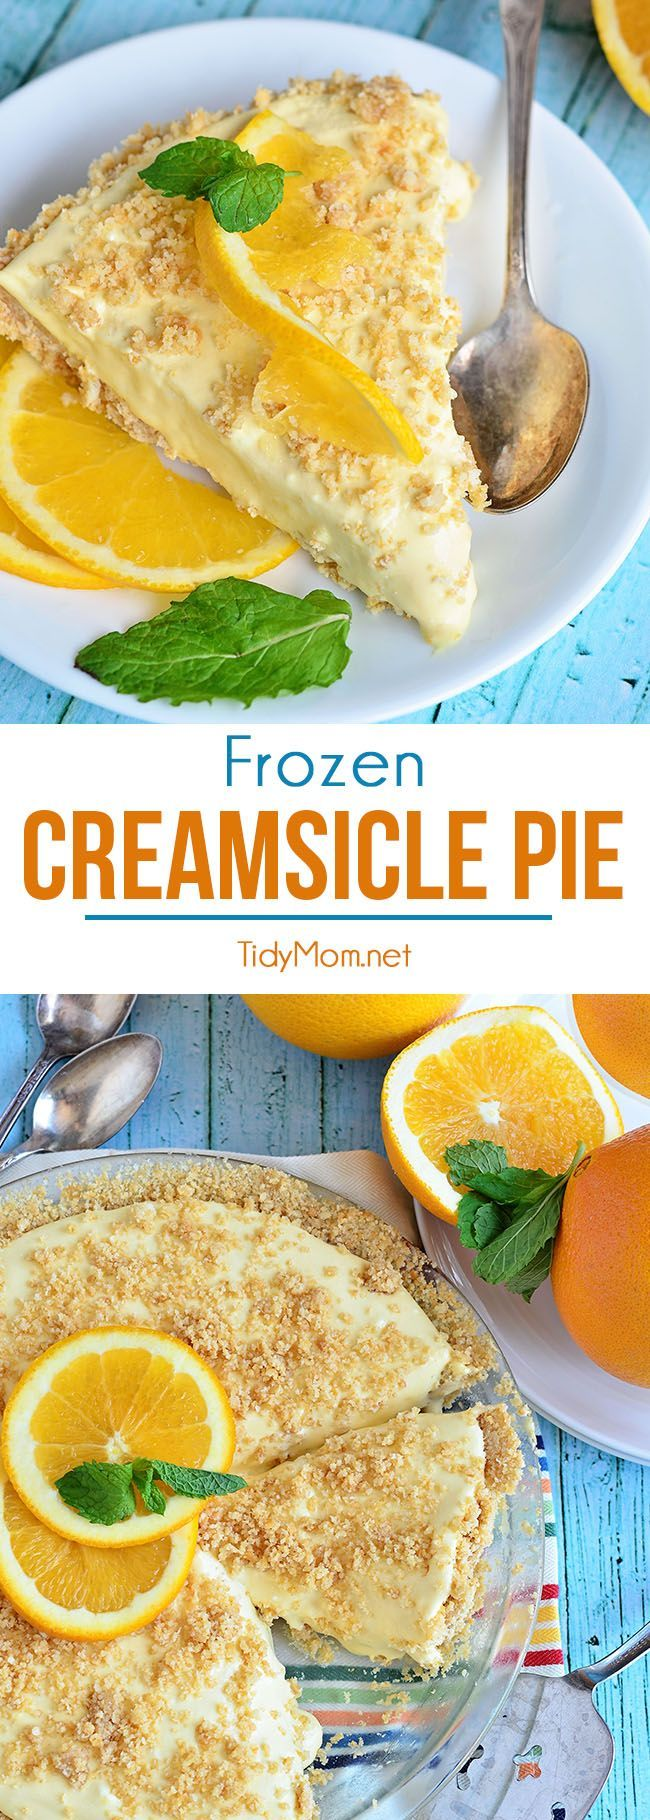 Orange creamsicle pie | Recipe | The Ice, A Fan and Frozen